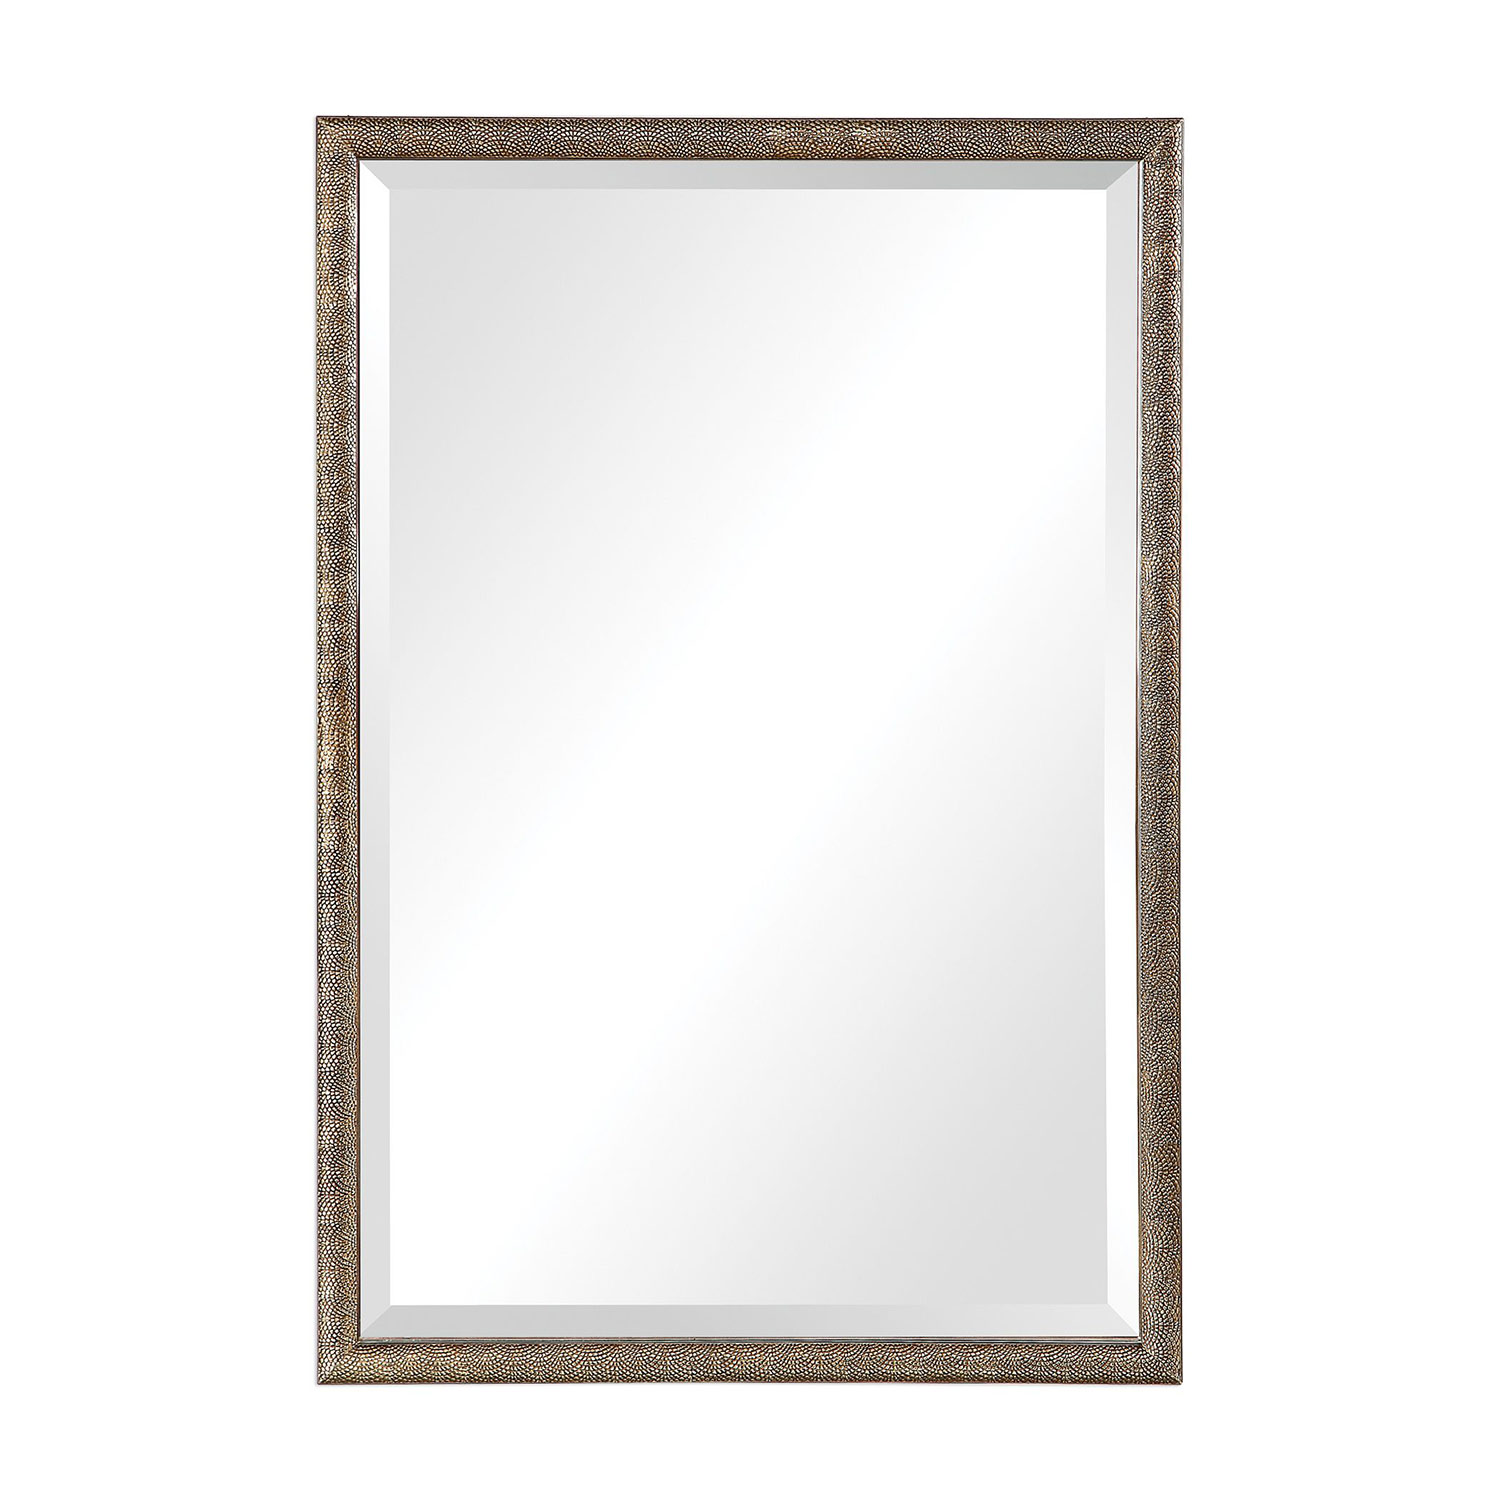 Uttermost Barree Mirror - Antiqued Champagne